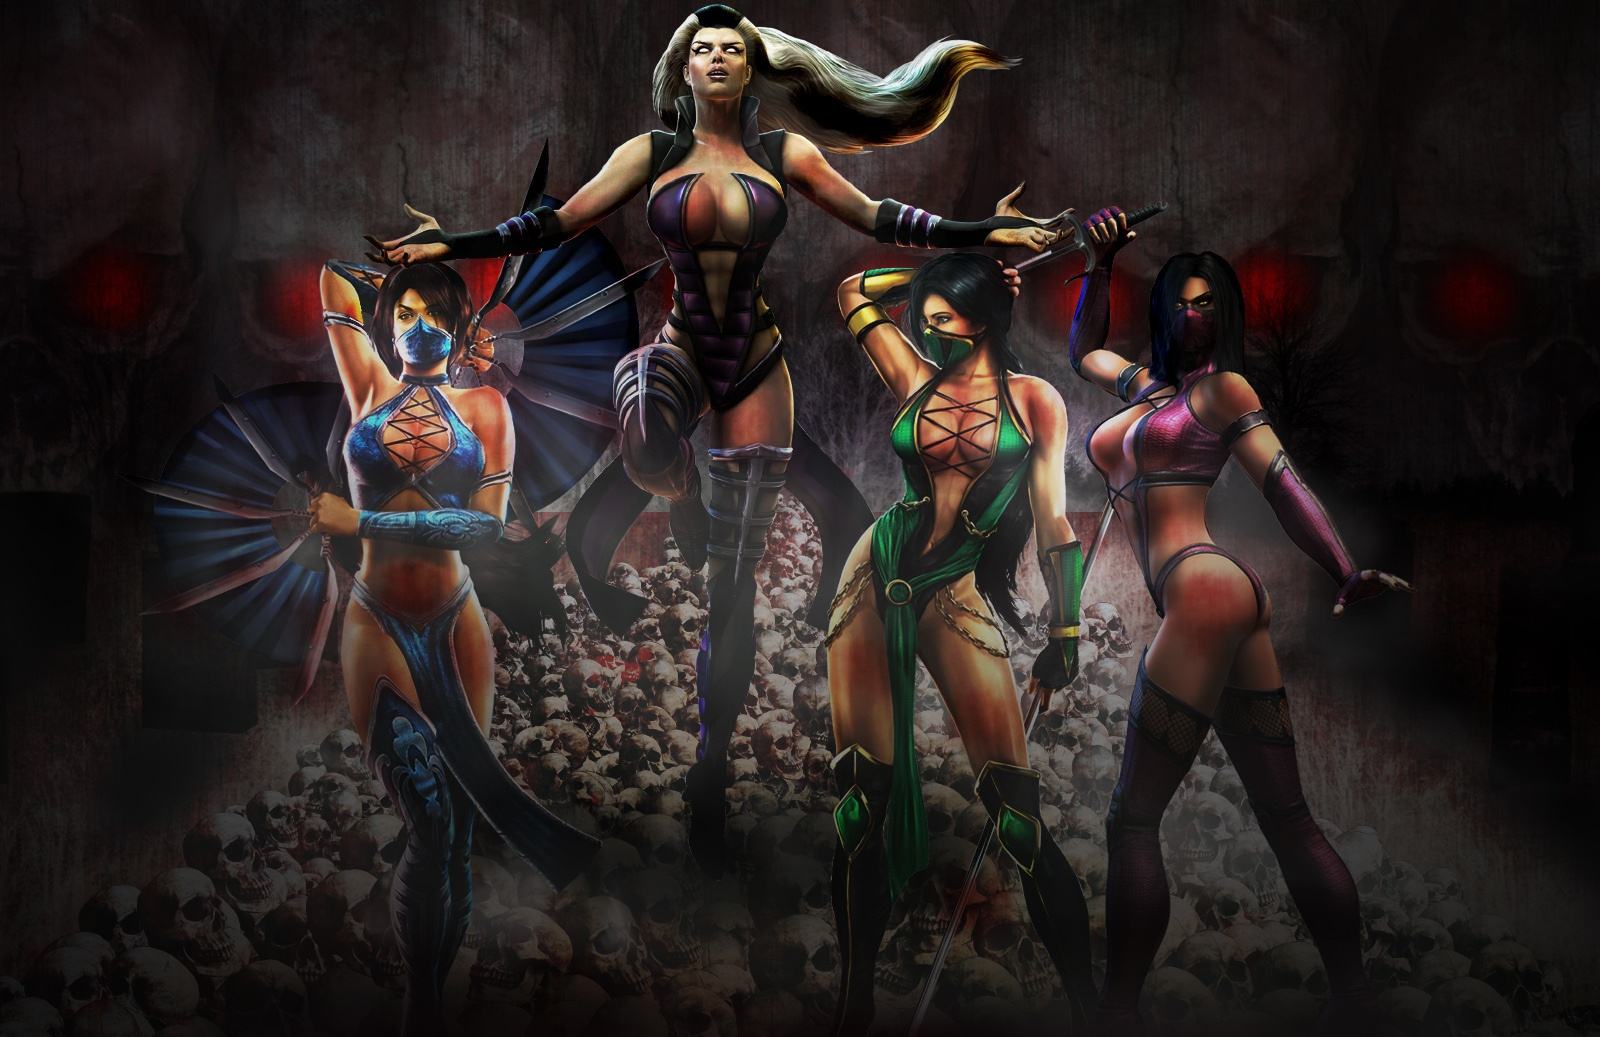 Xxx mortal kombat sindel and milee naked picture